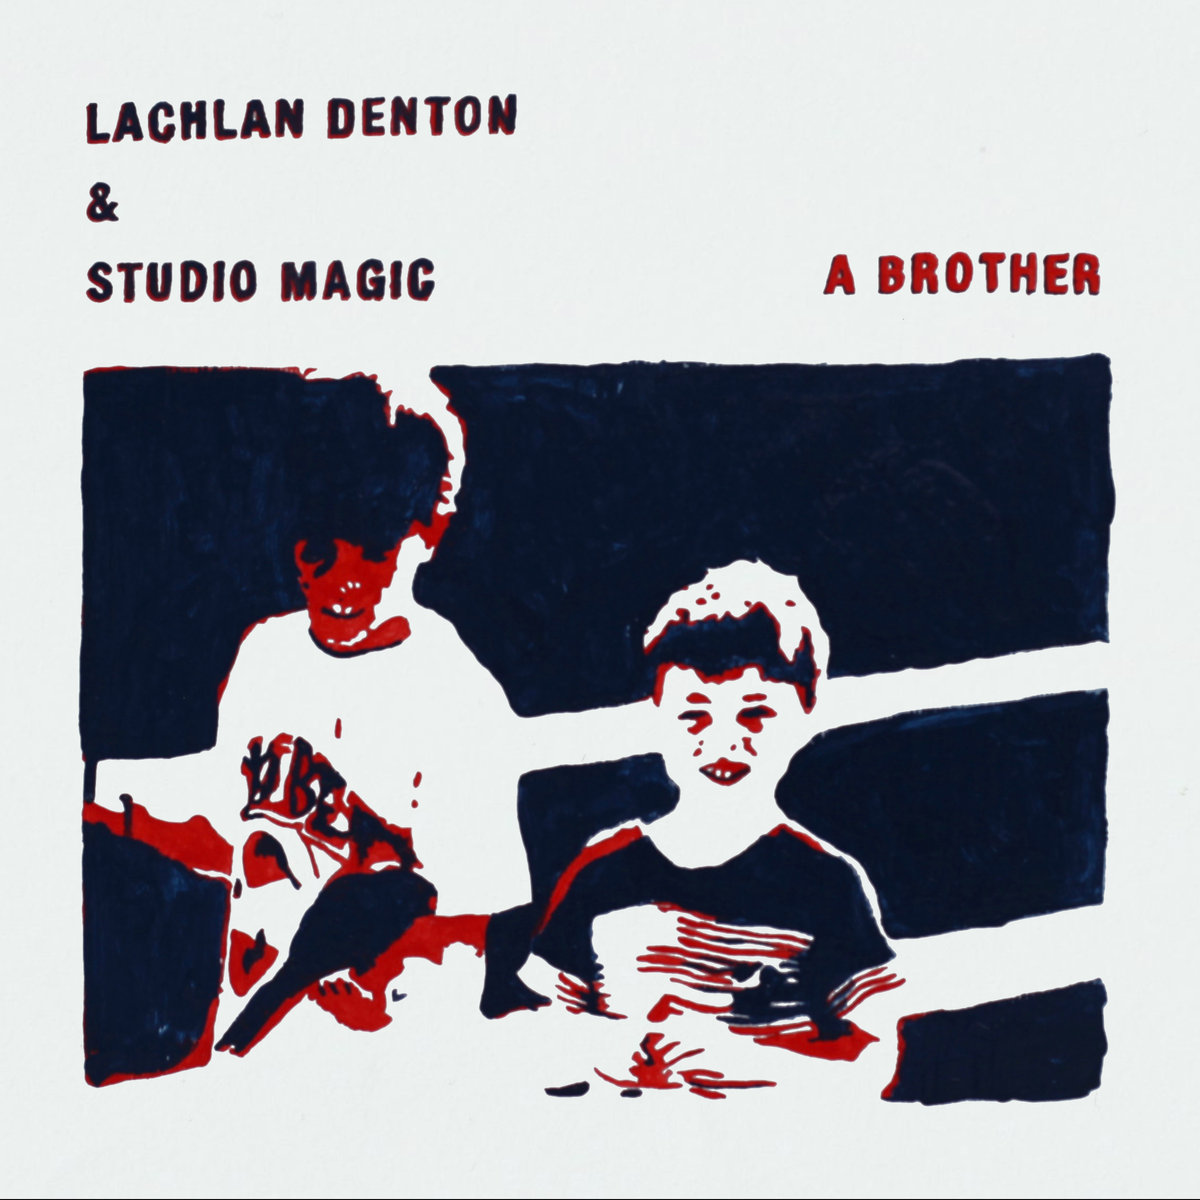 Lachlan Denton & Studio Magic - This Christmas